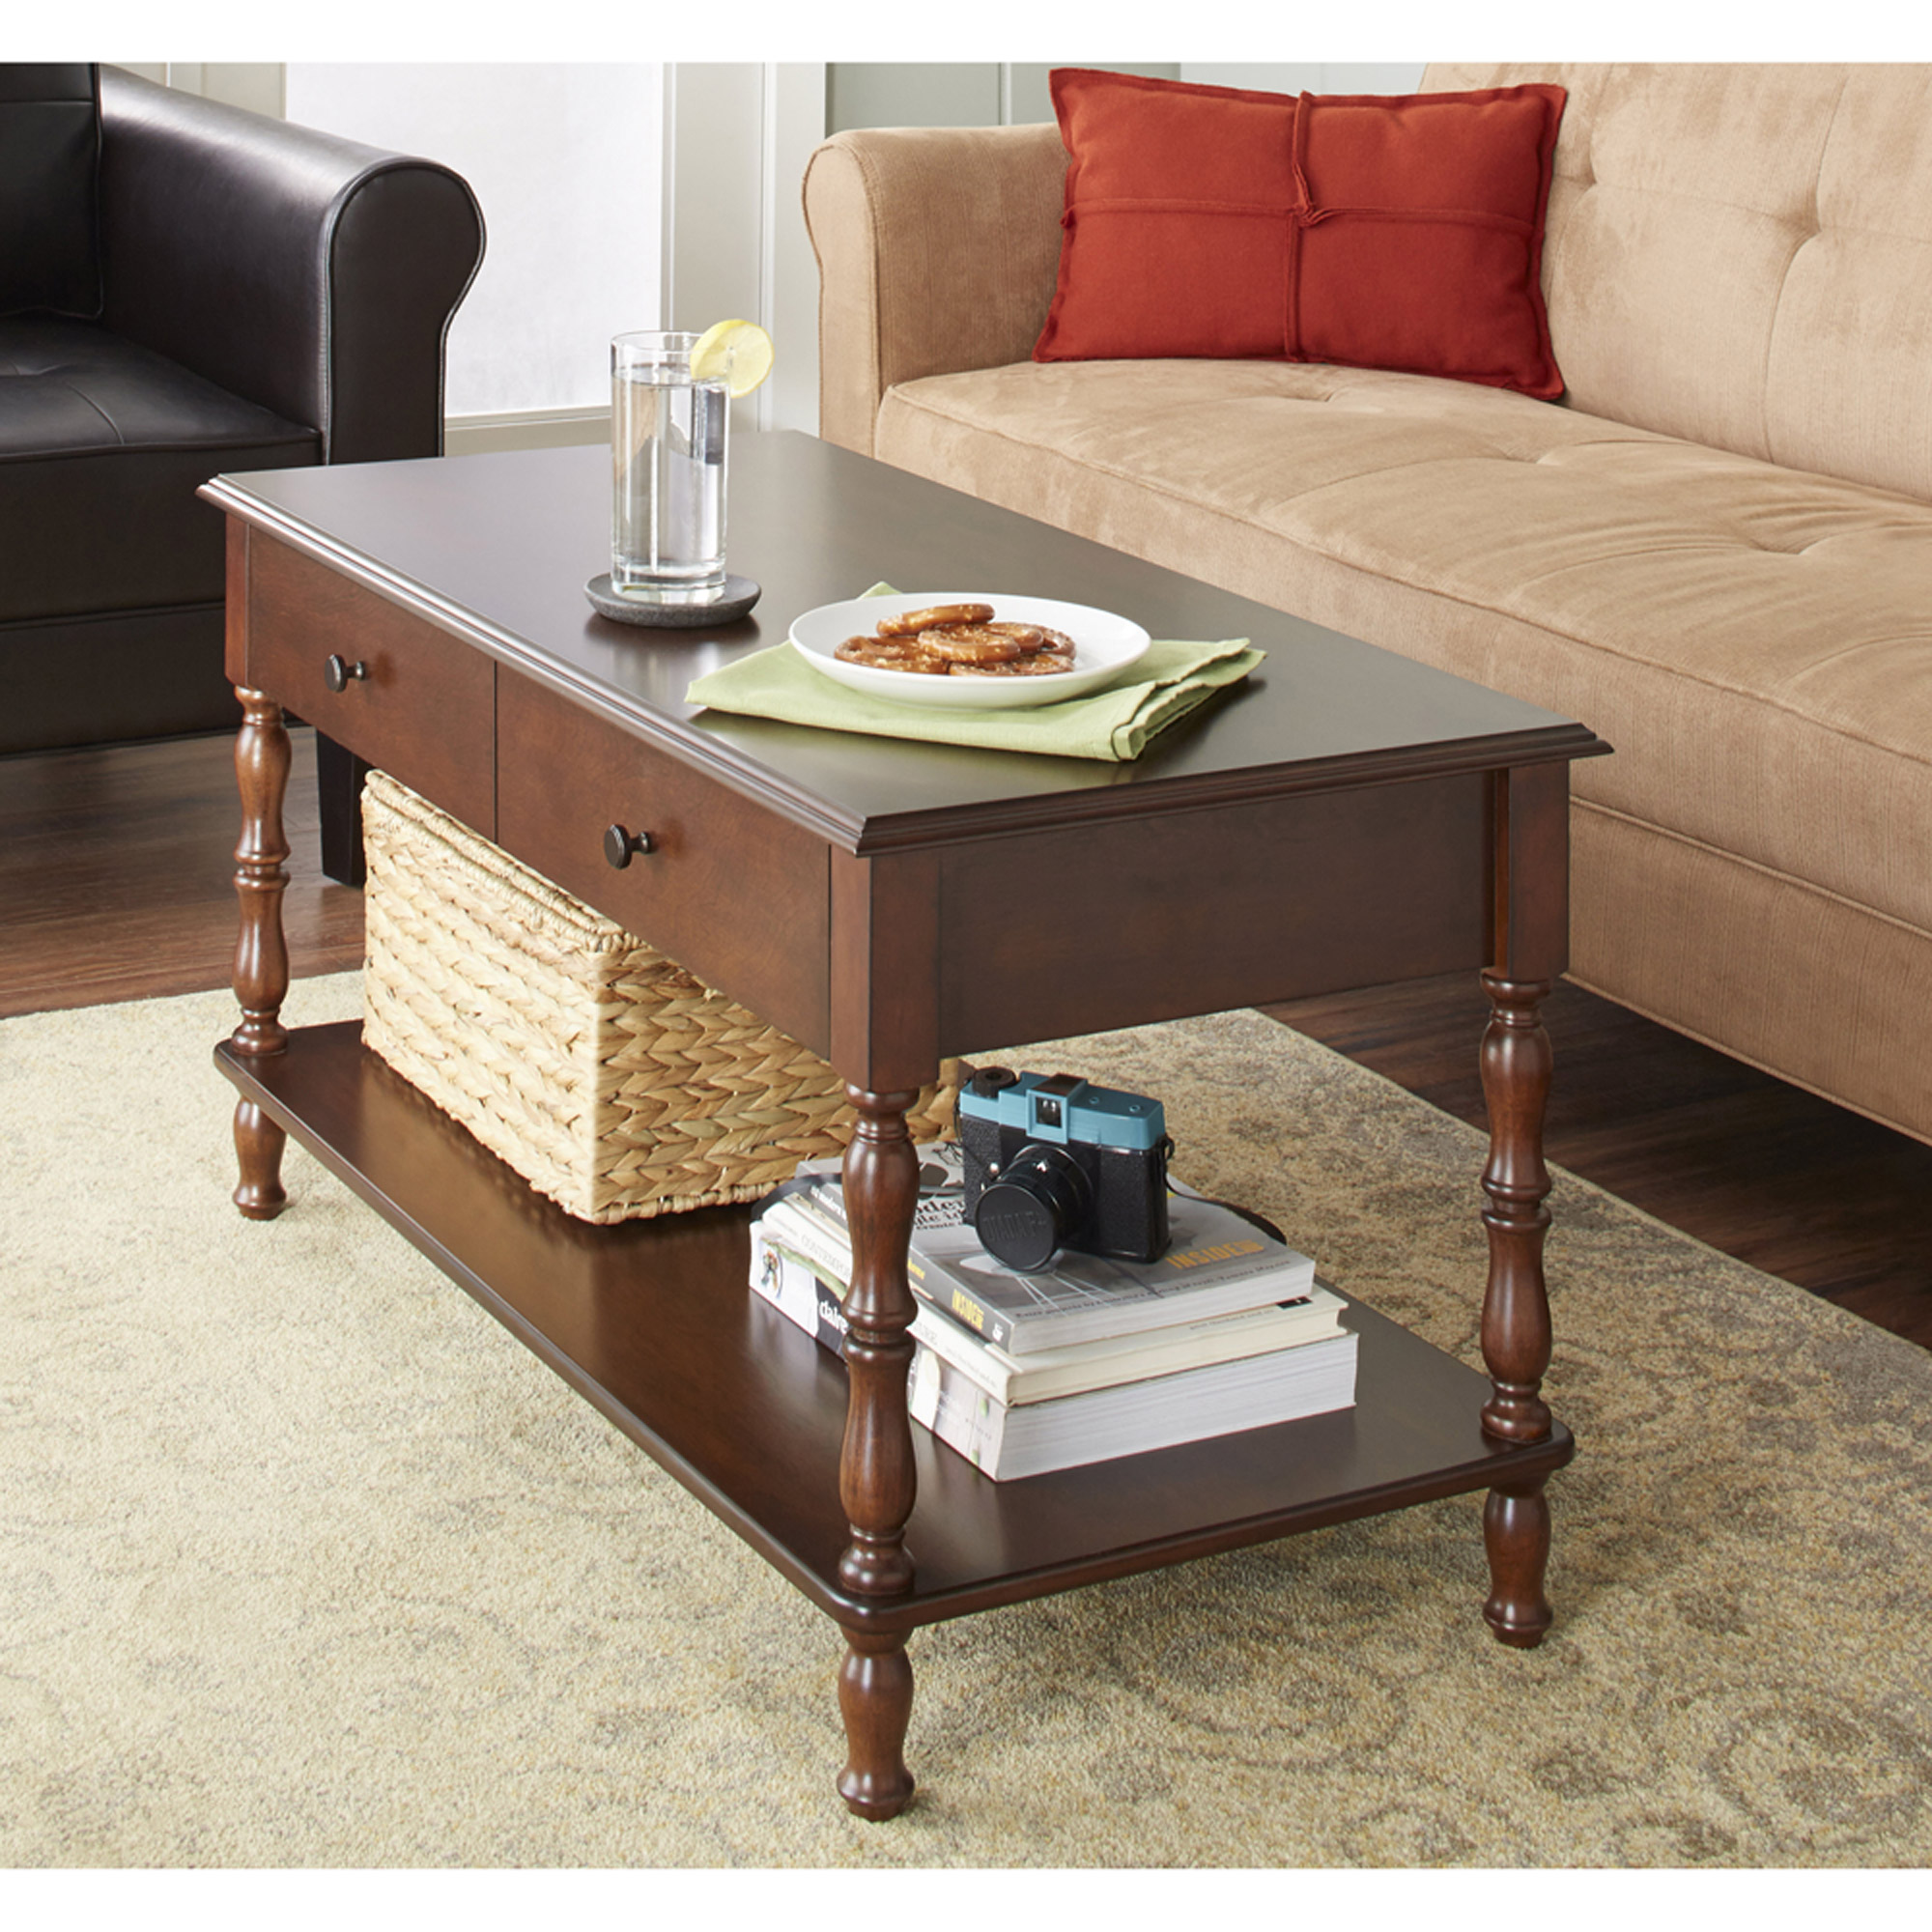 Walmart Coffee Tables: 10 Spring Street Marianna Coffee Table, Multiple Colors